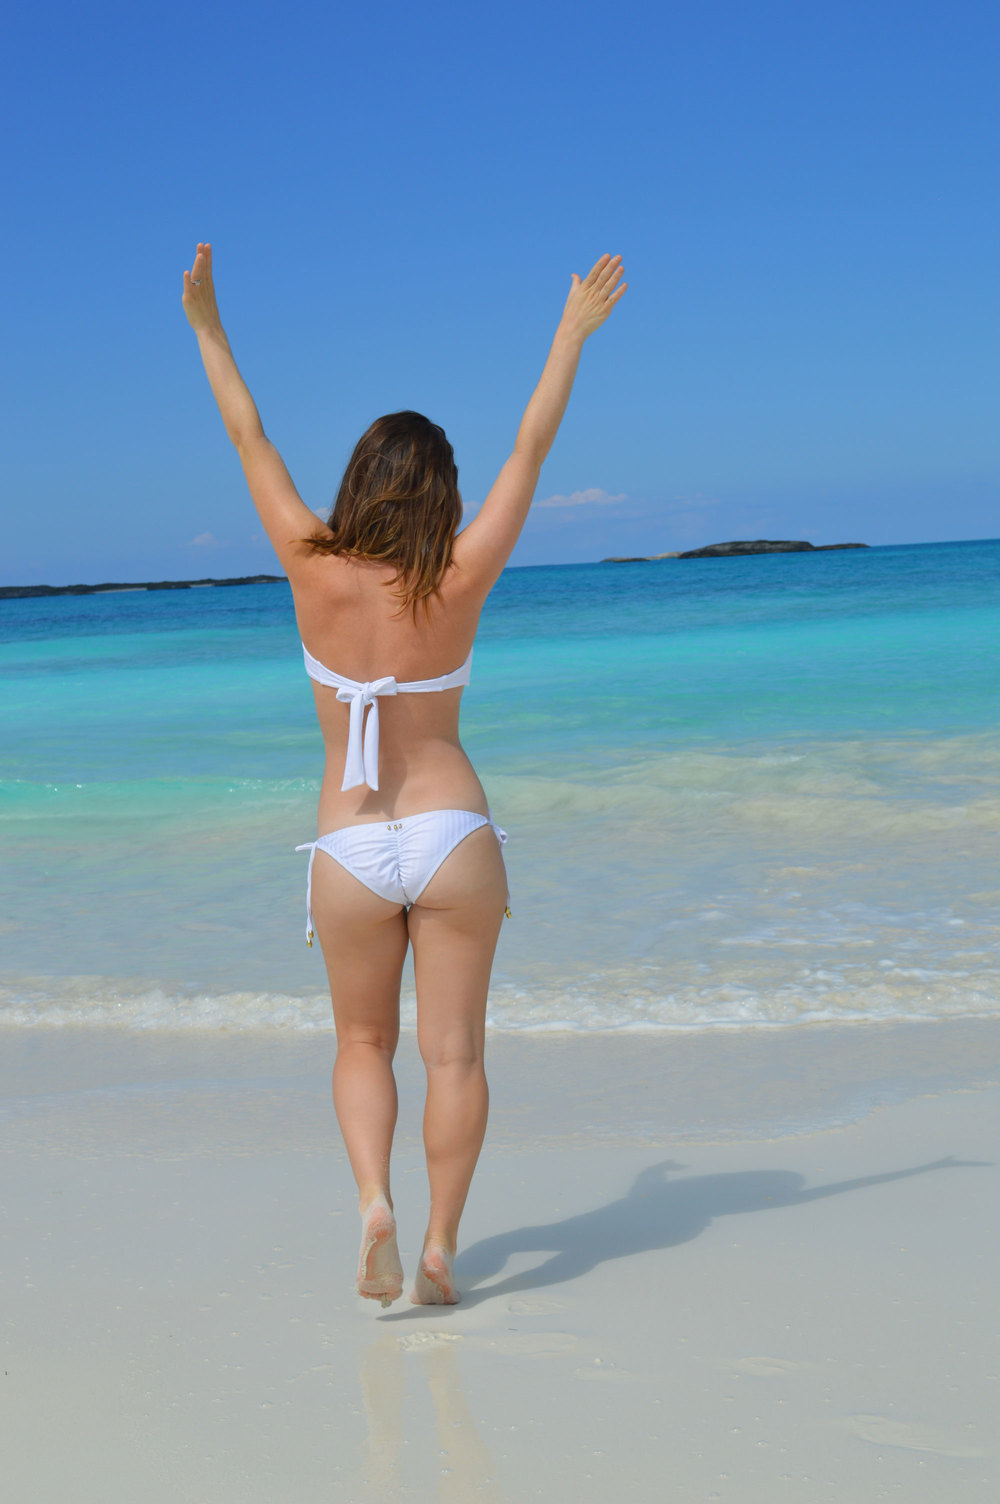 Mia-Marcelle-Moorea-Perfect-bacherlorette-white-bikini-exuma-nassau-bahamas-islands-vacation-spring.jpeg